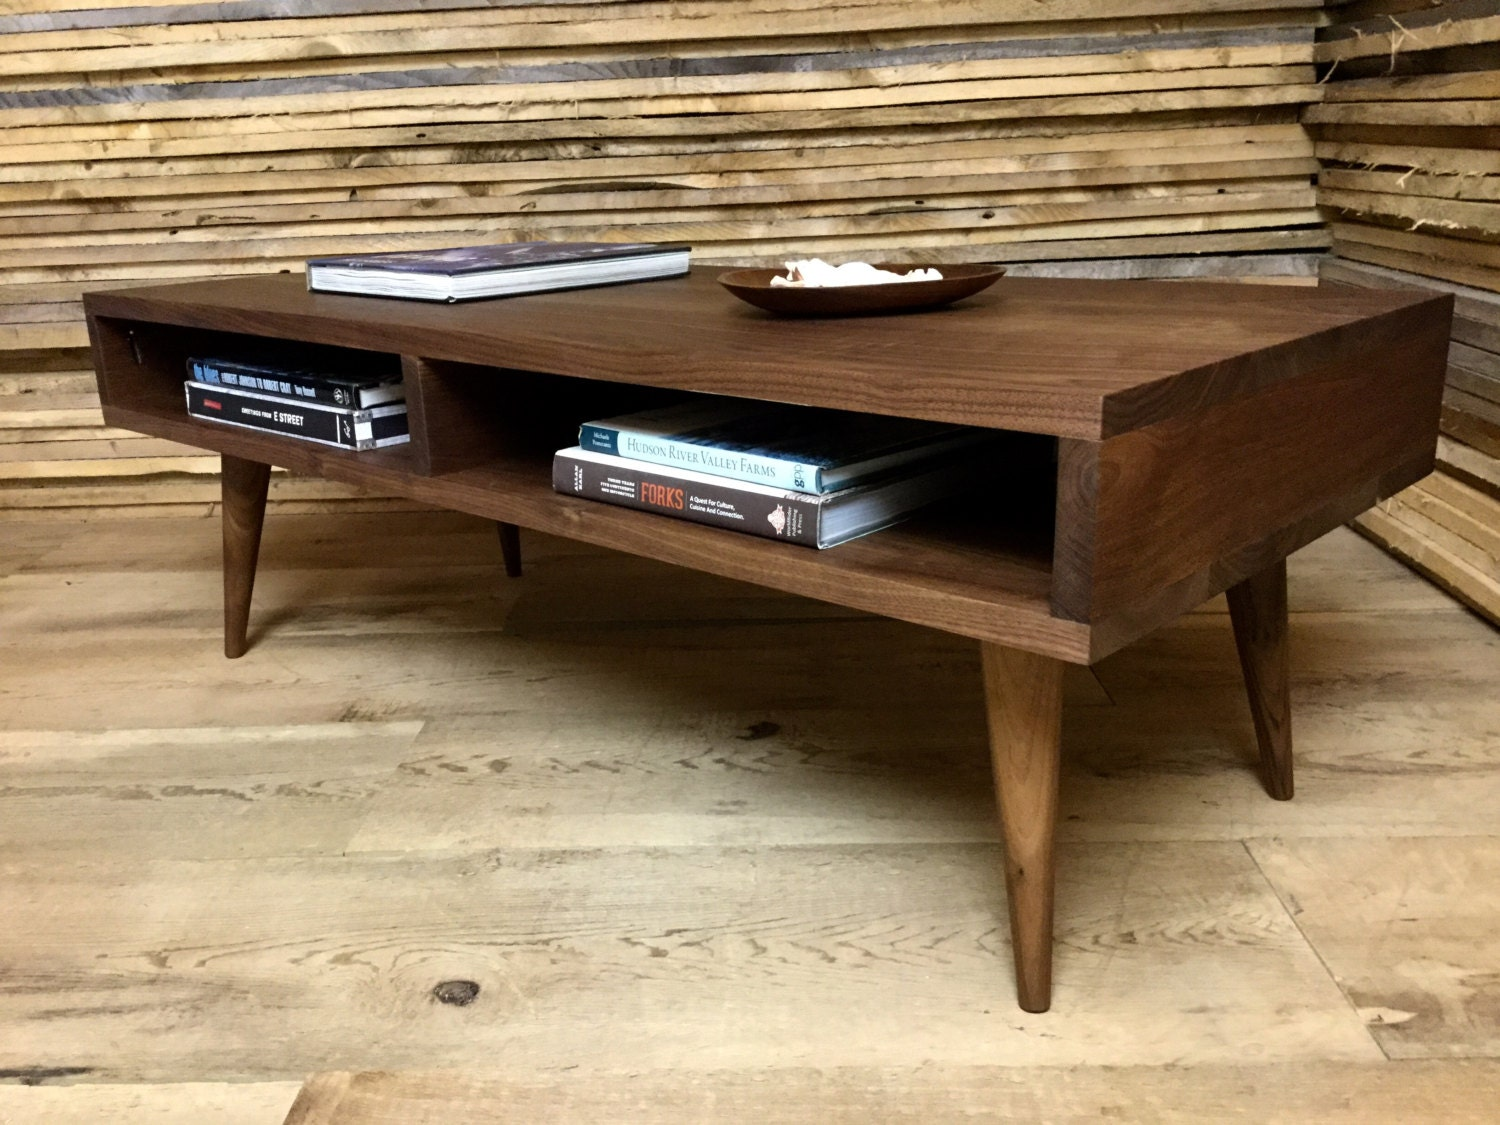 Boxer mid century modern coffee table with storage by scottcassin Mid century coffee tables